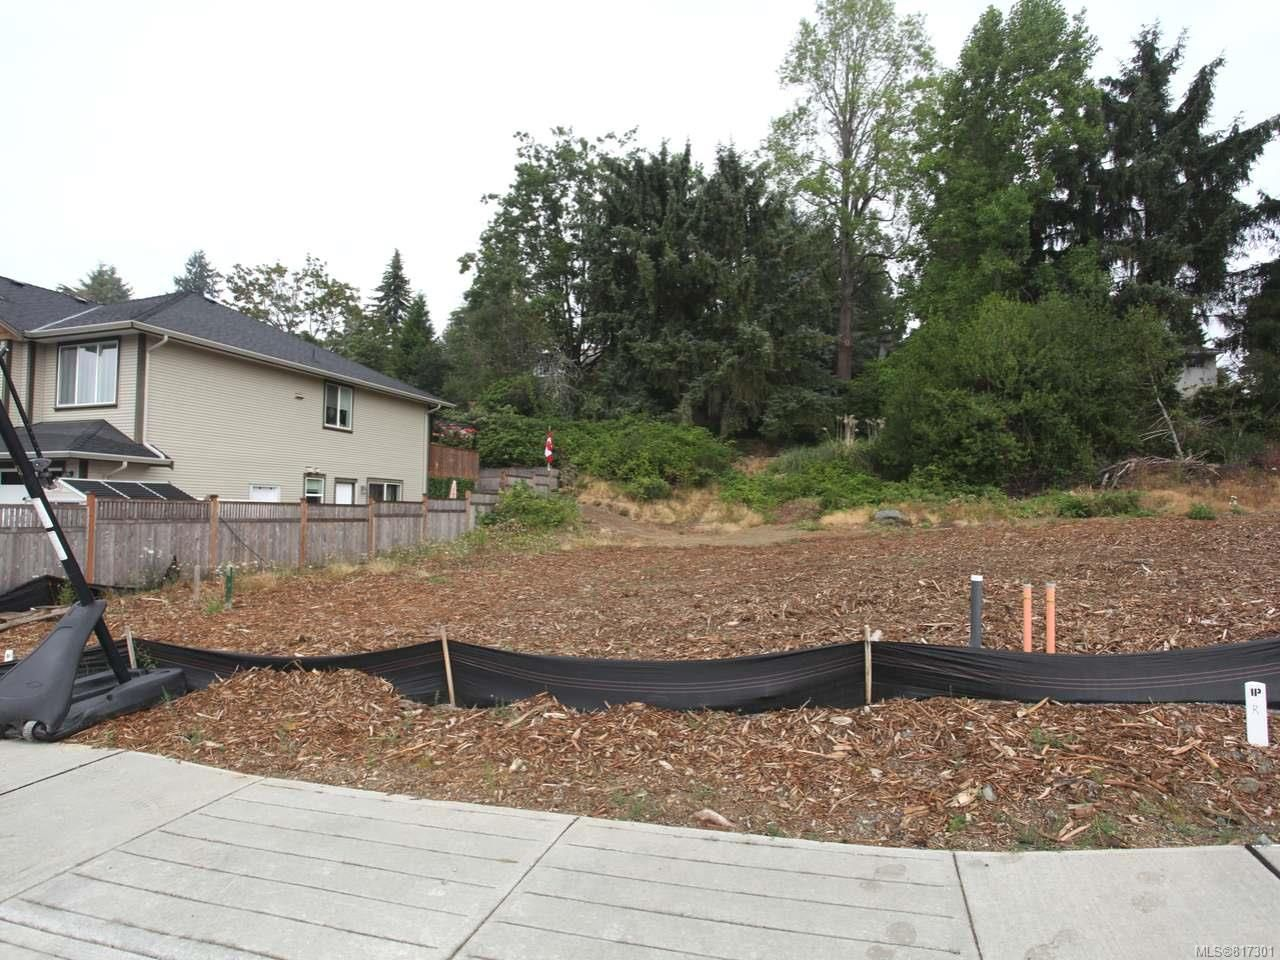 Main Photo: 534 Menzies Ridge Dr in NANAIMO: Na University District Land for sale (Nanaimo)  : MLS®# 817301